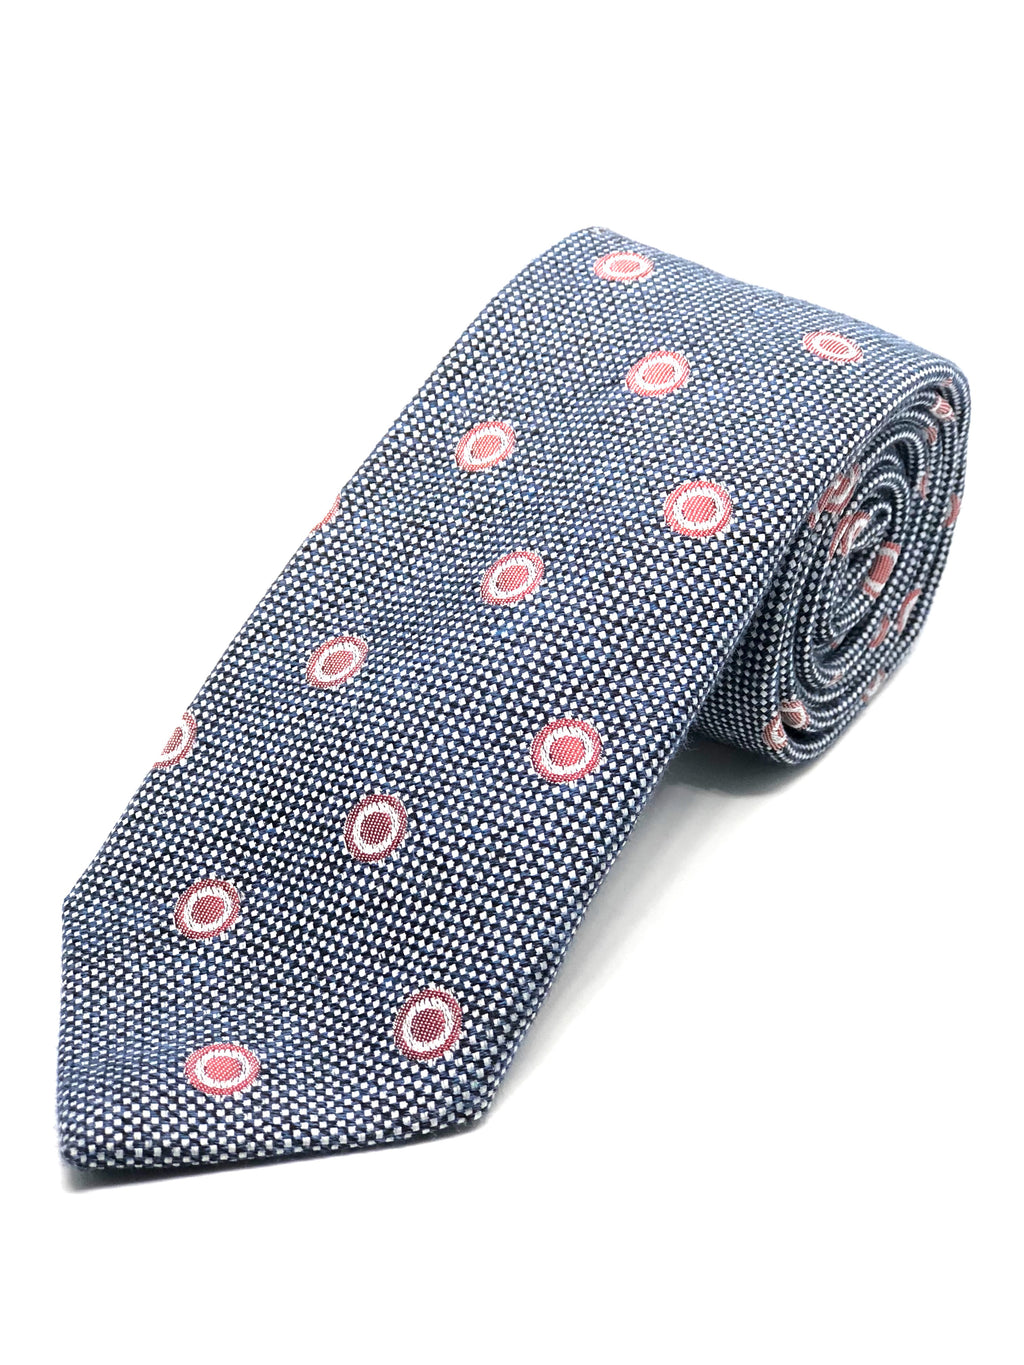 Textured Tie - Navy with Red Circles